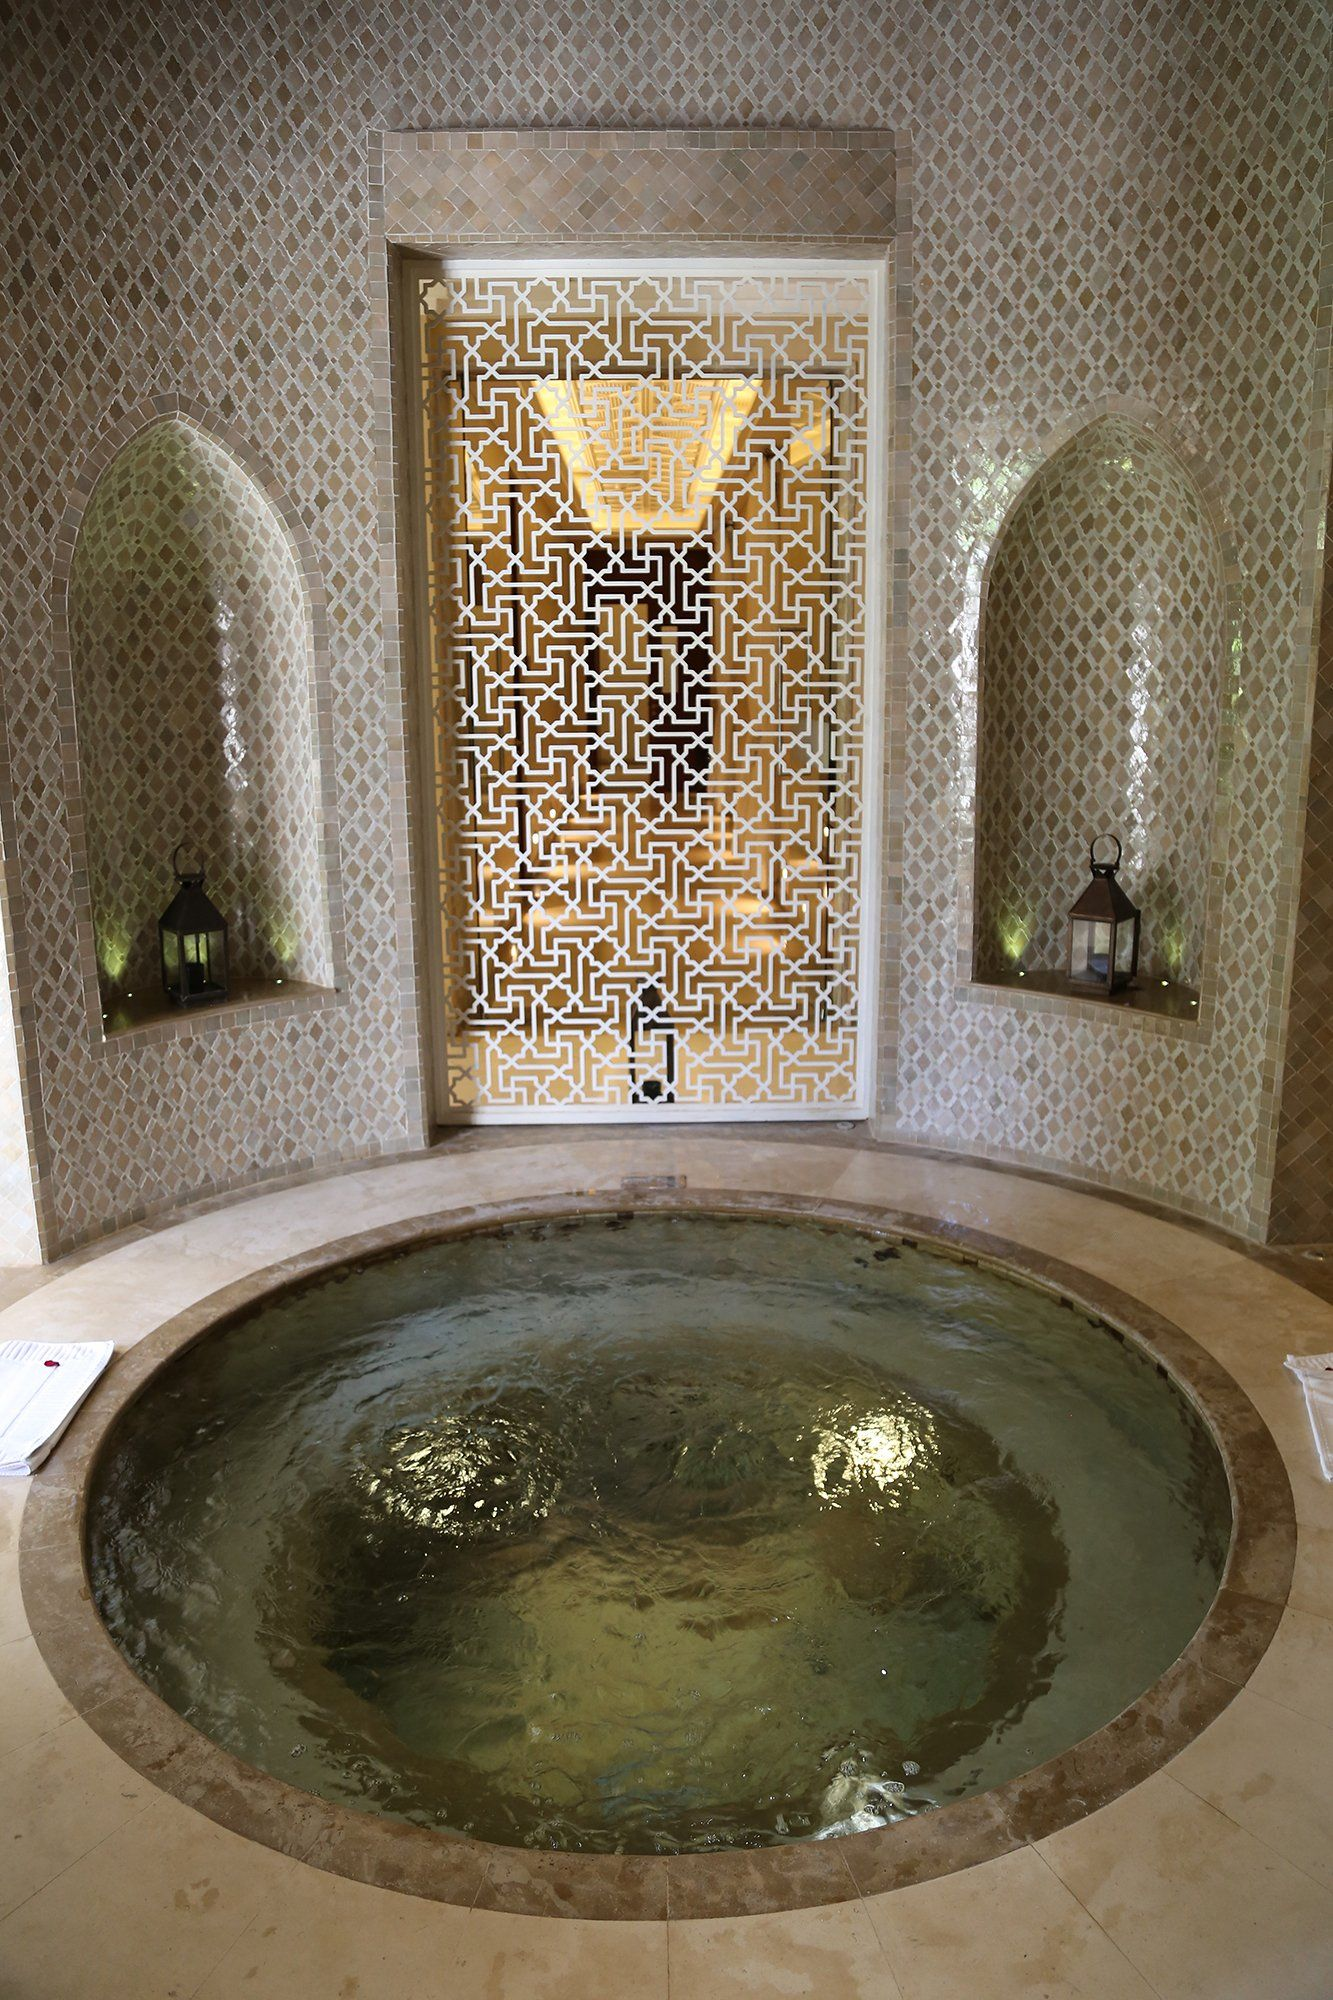 How To Experience A Hammam In Marrakech Like A Local Hammam Maison Salle De Bains Orientale Decoration Interieure Luxe